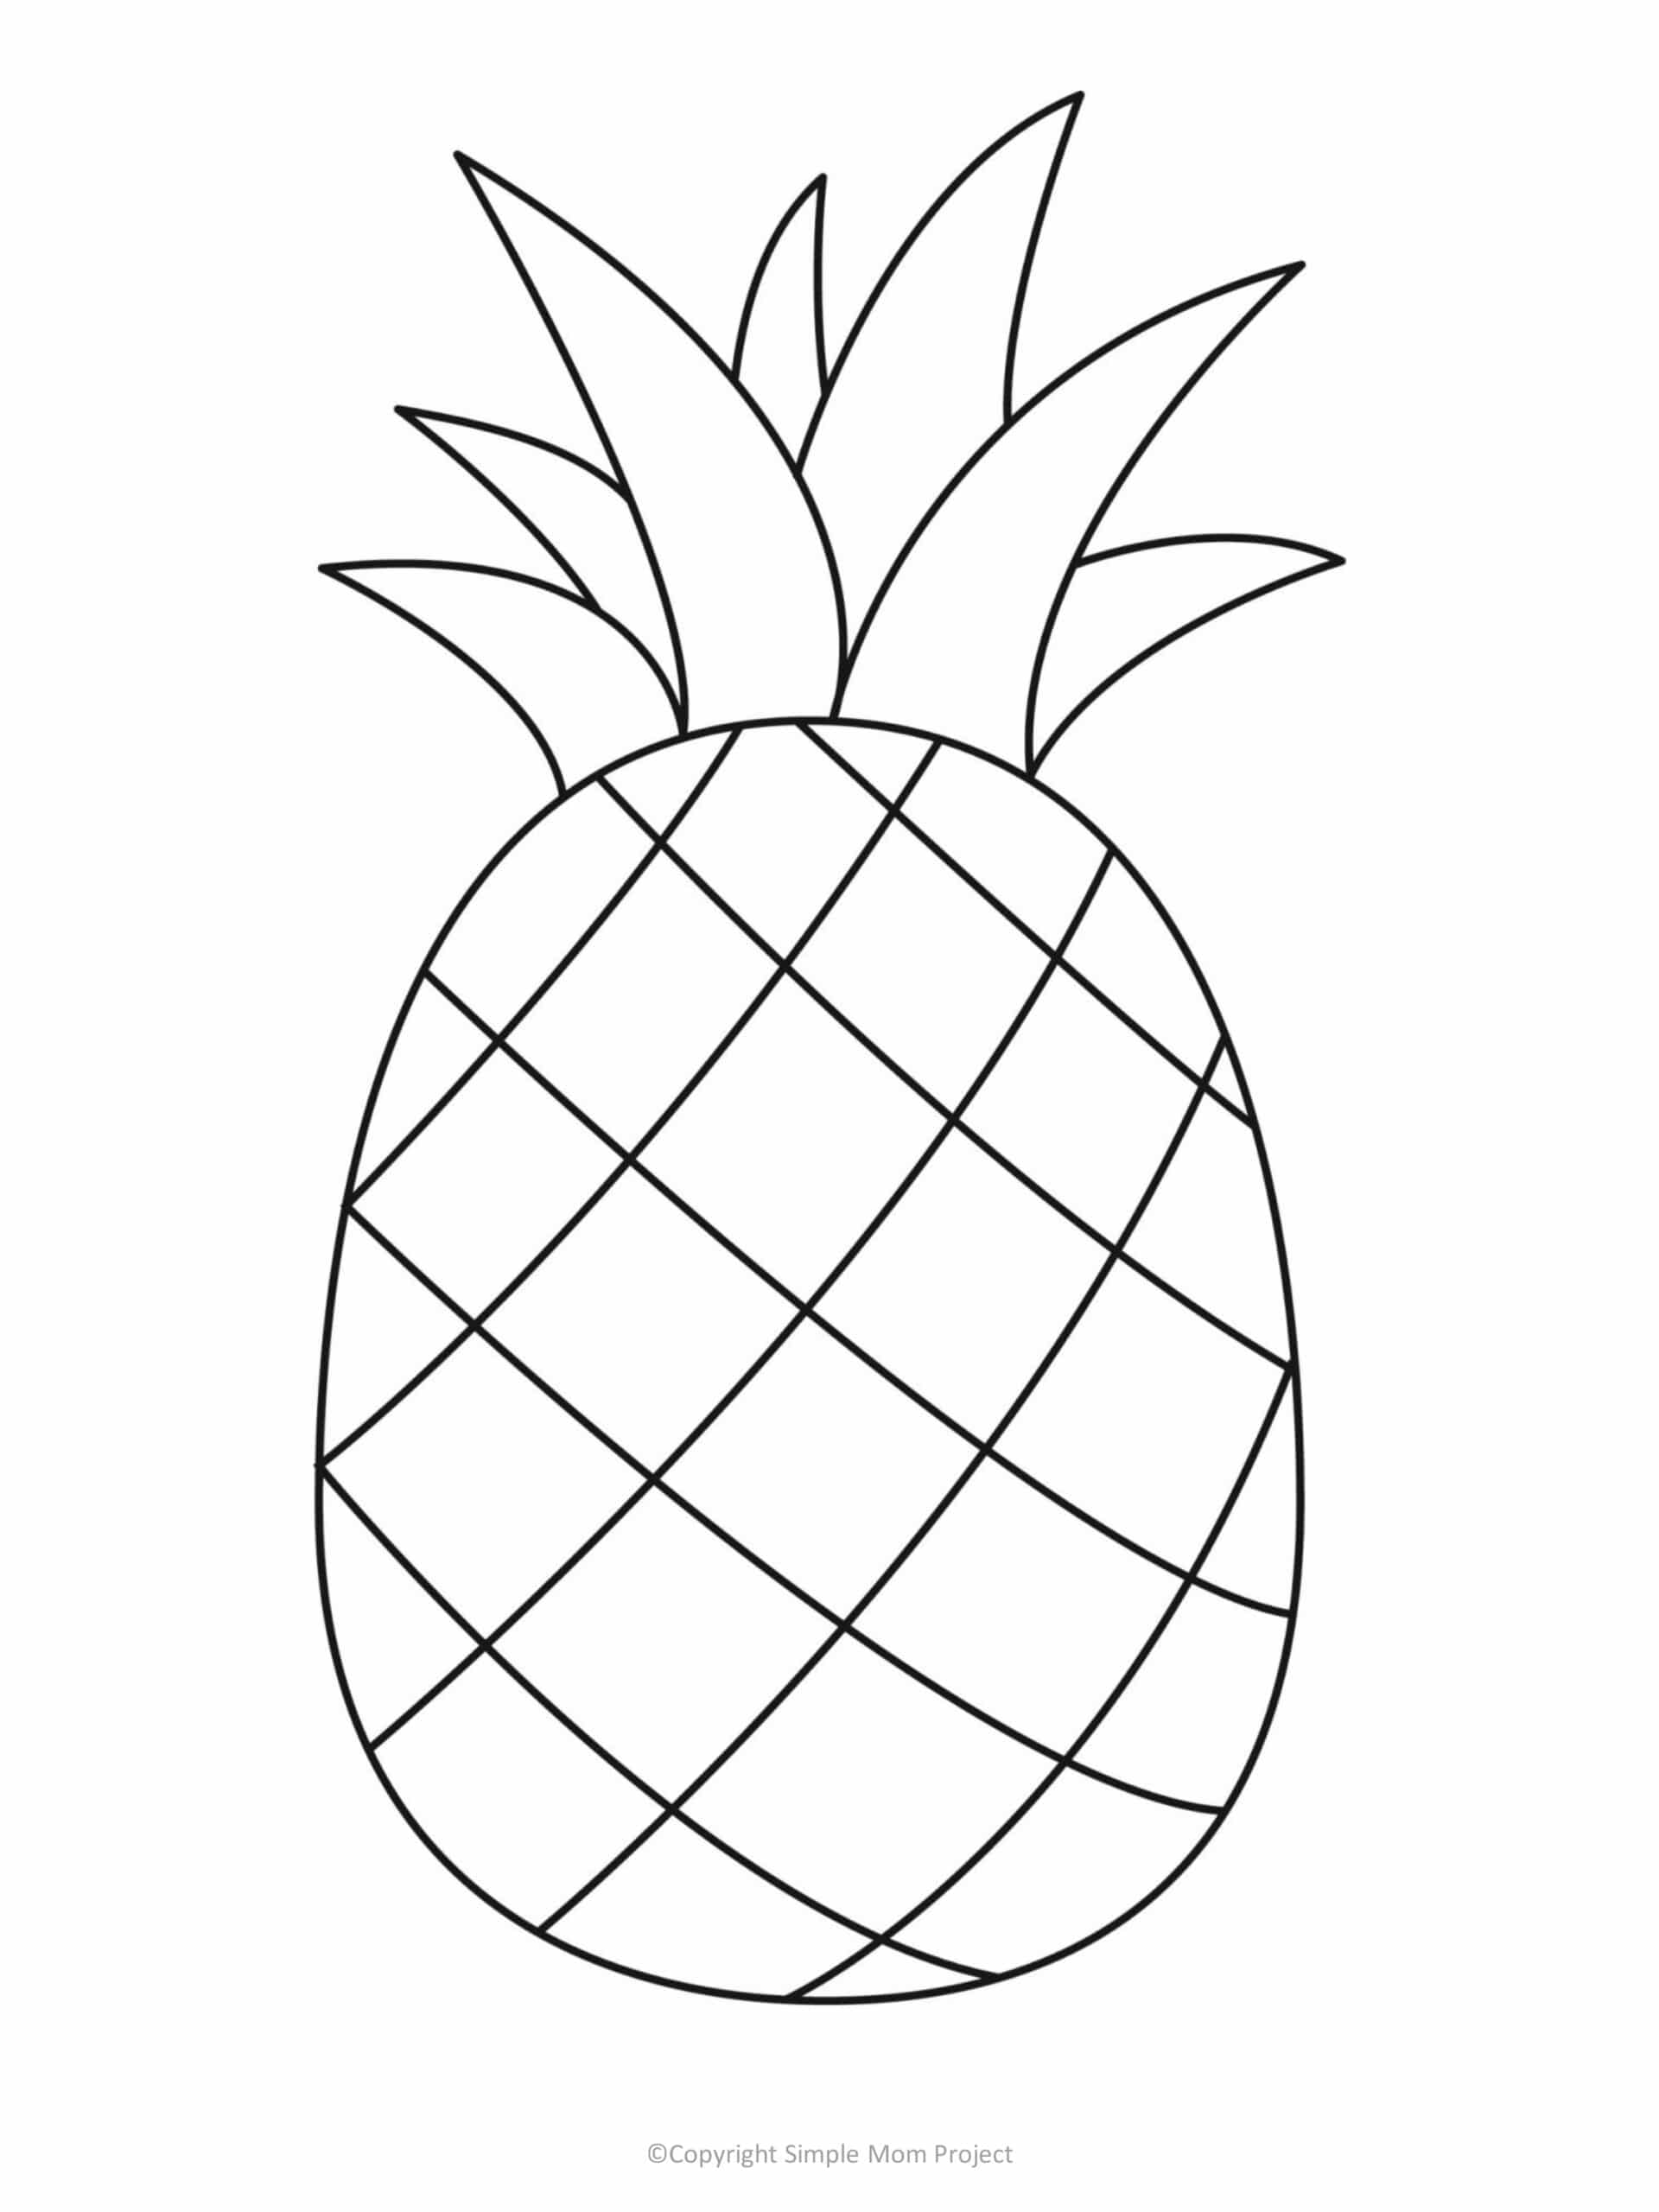 printable pineapple template for preschoolers, toddlers and summer crafts